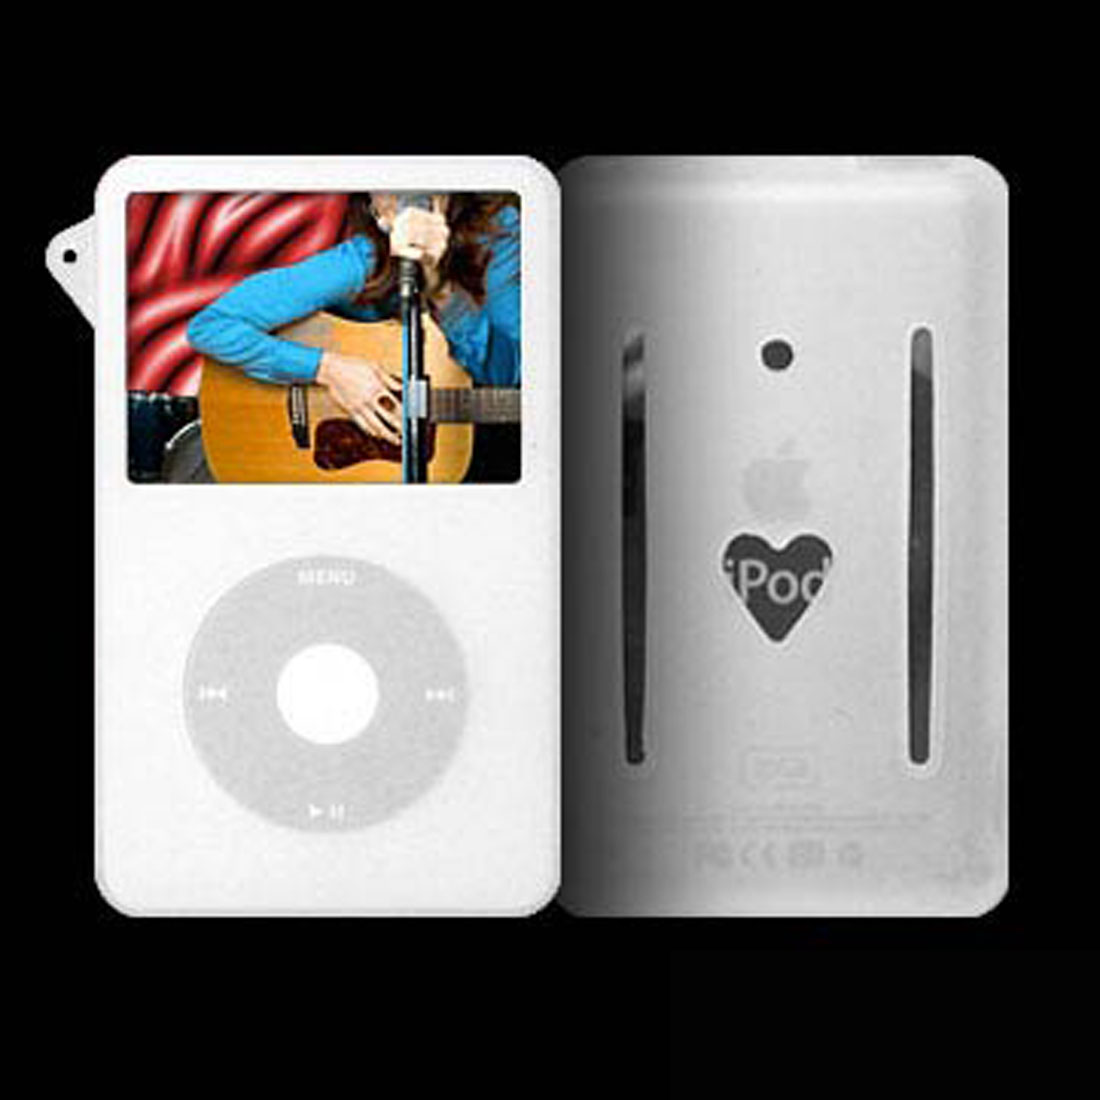 Silicon Skin (White) + Armband for iPod Video 5G